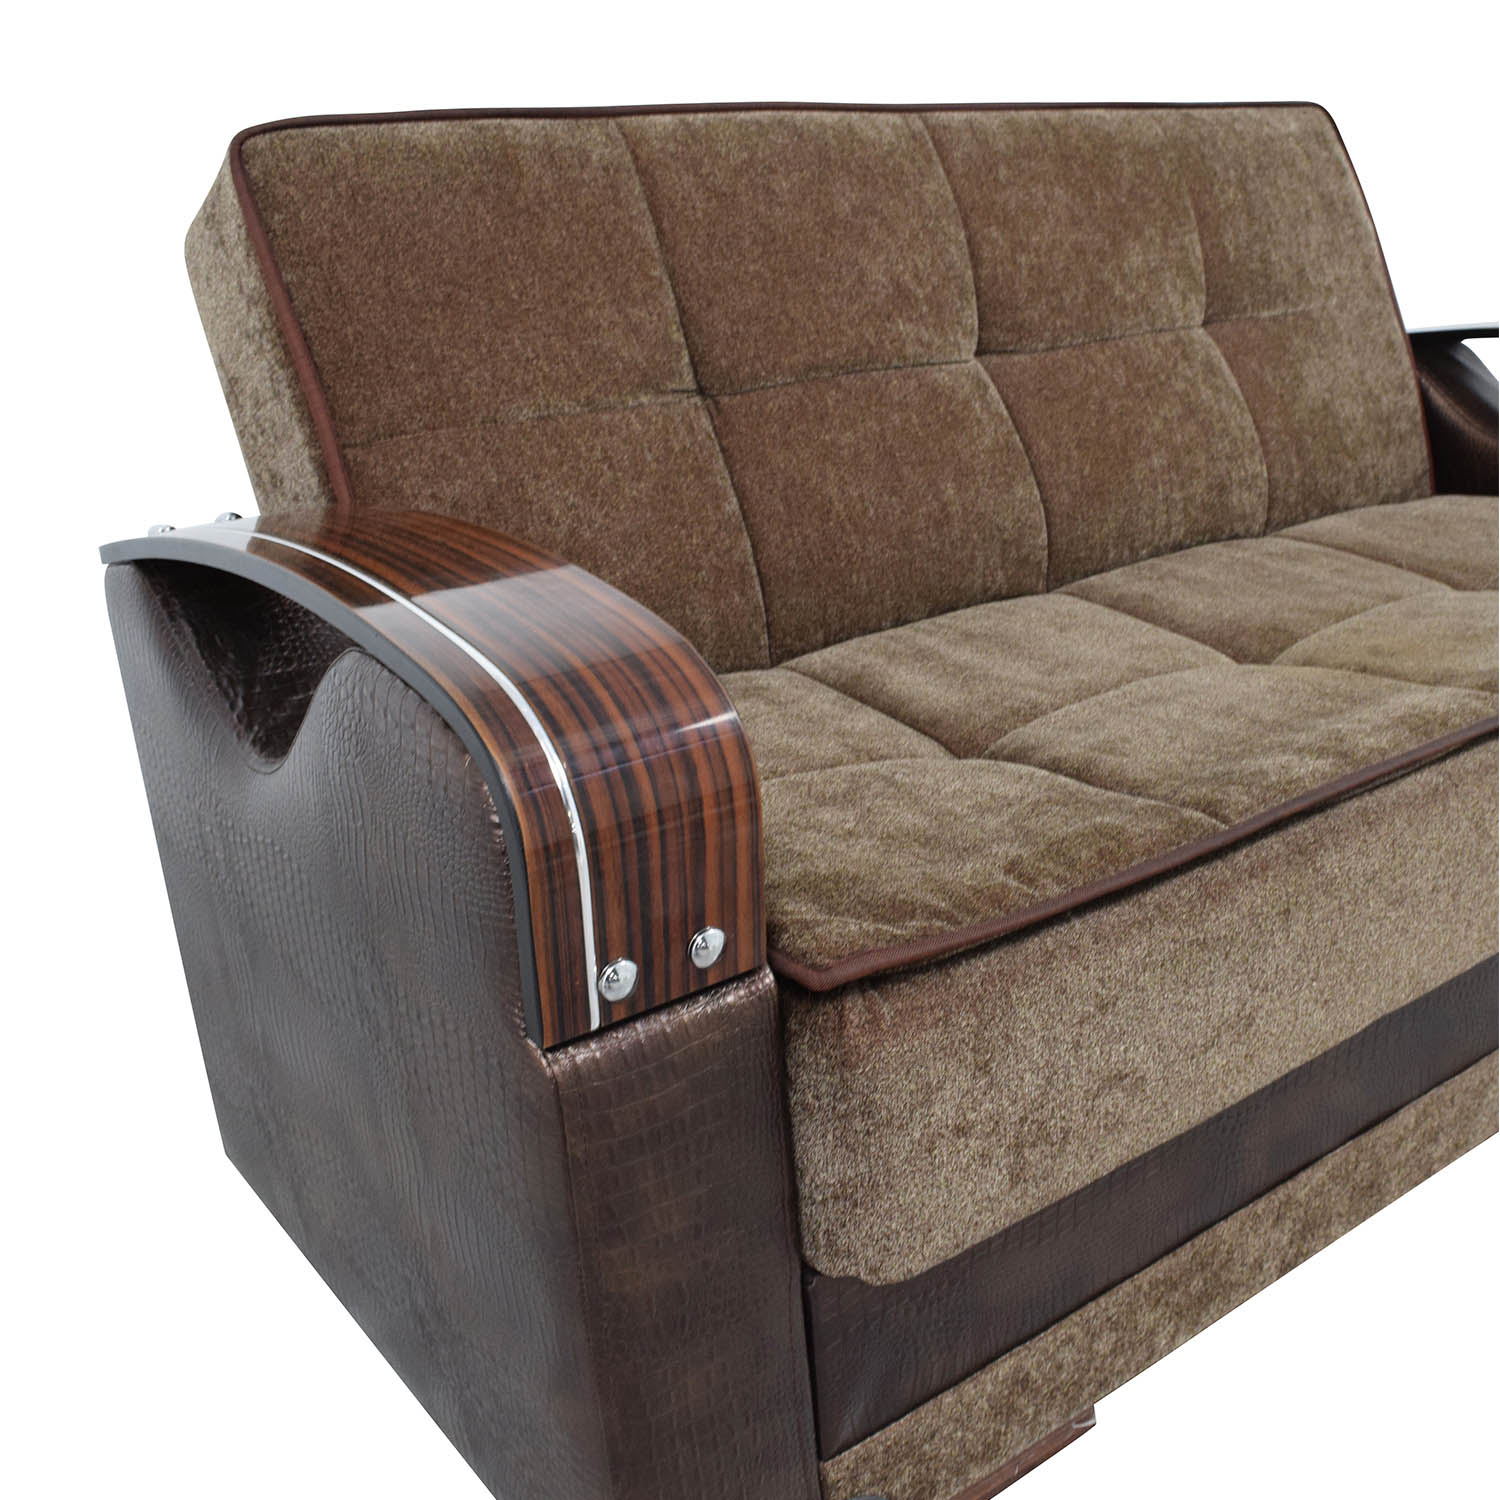 Wooden Love Seat Sofa Design ~ Off na brown futon love seat with wooden armrest sofas